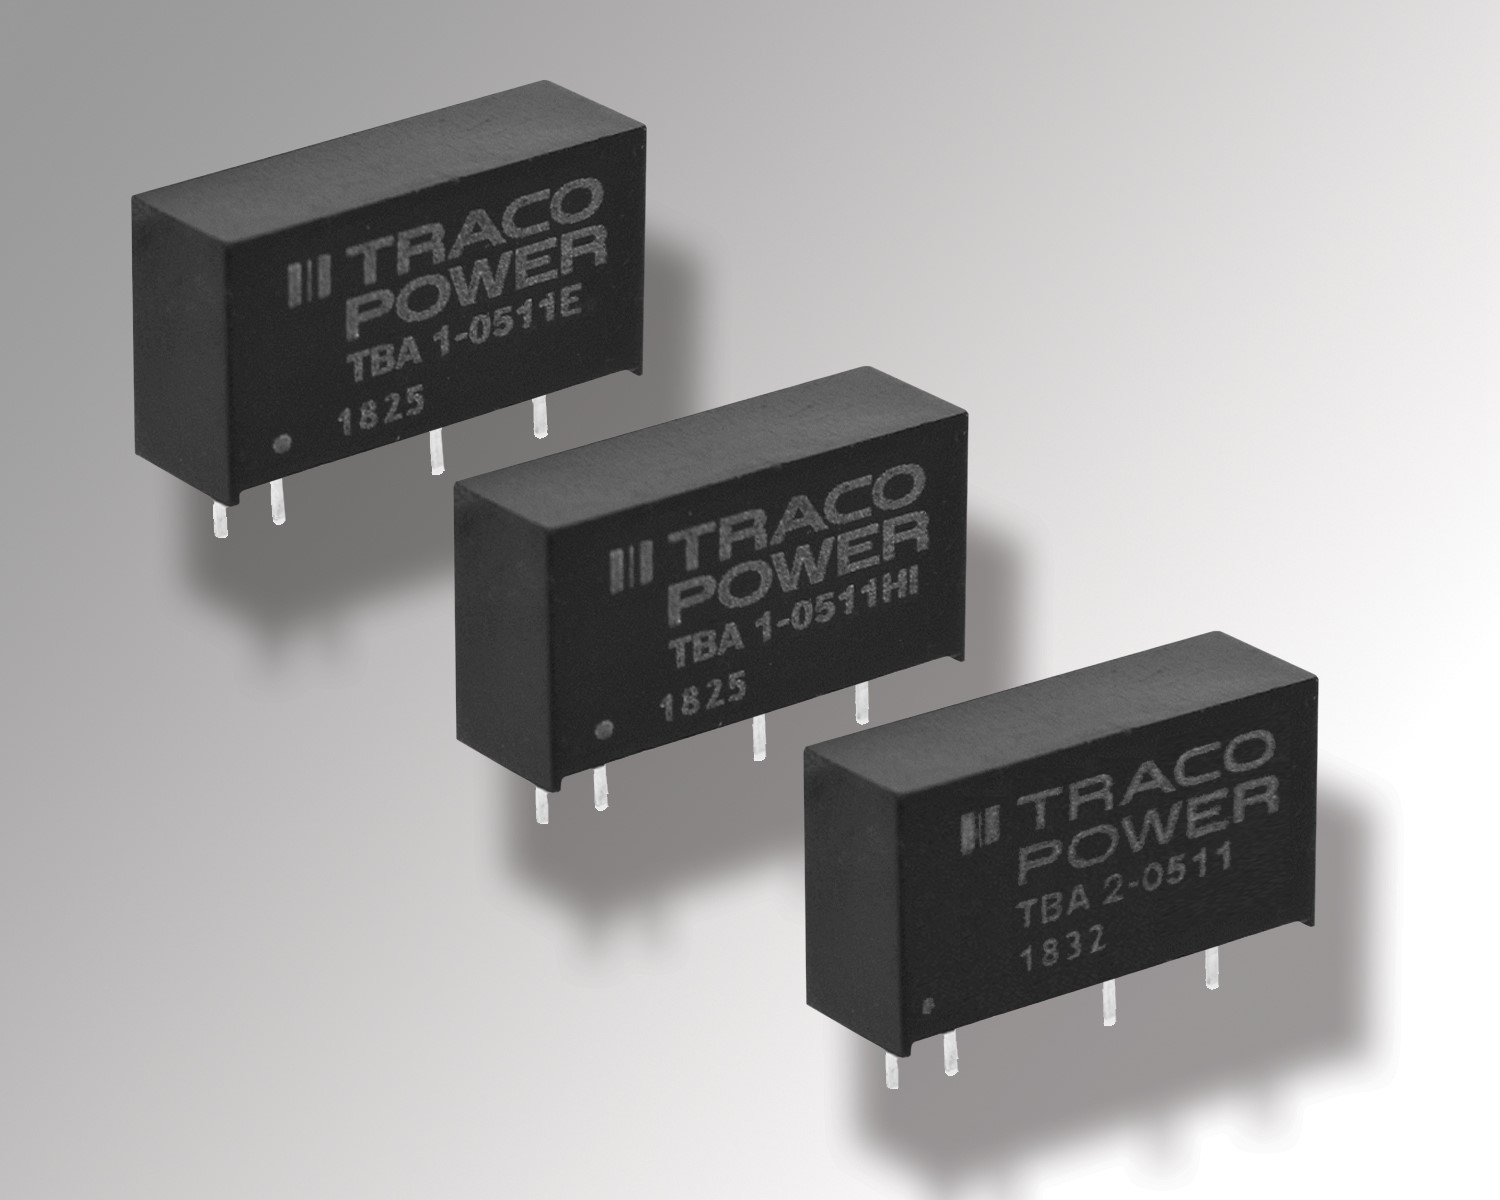 TRACO POWER introduces TEC 3 series of DC-DC converters